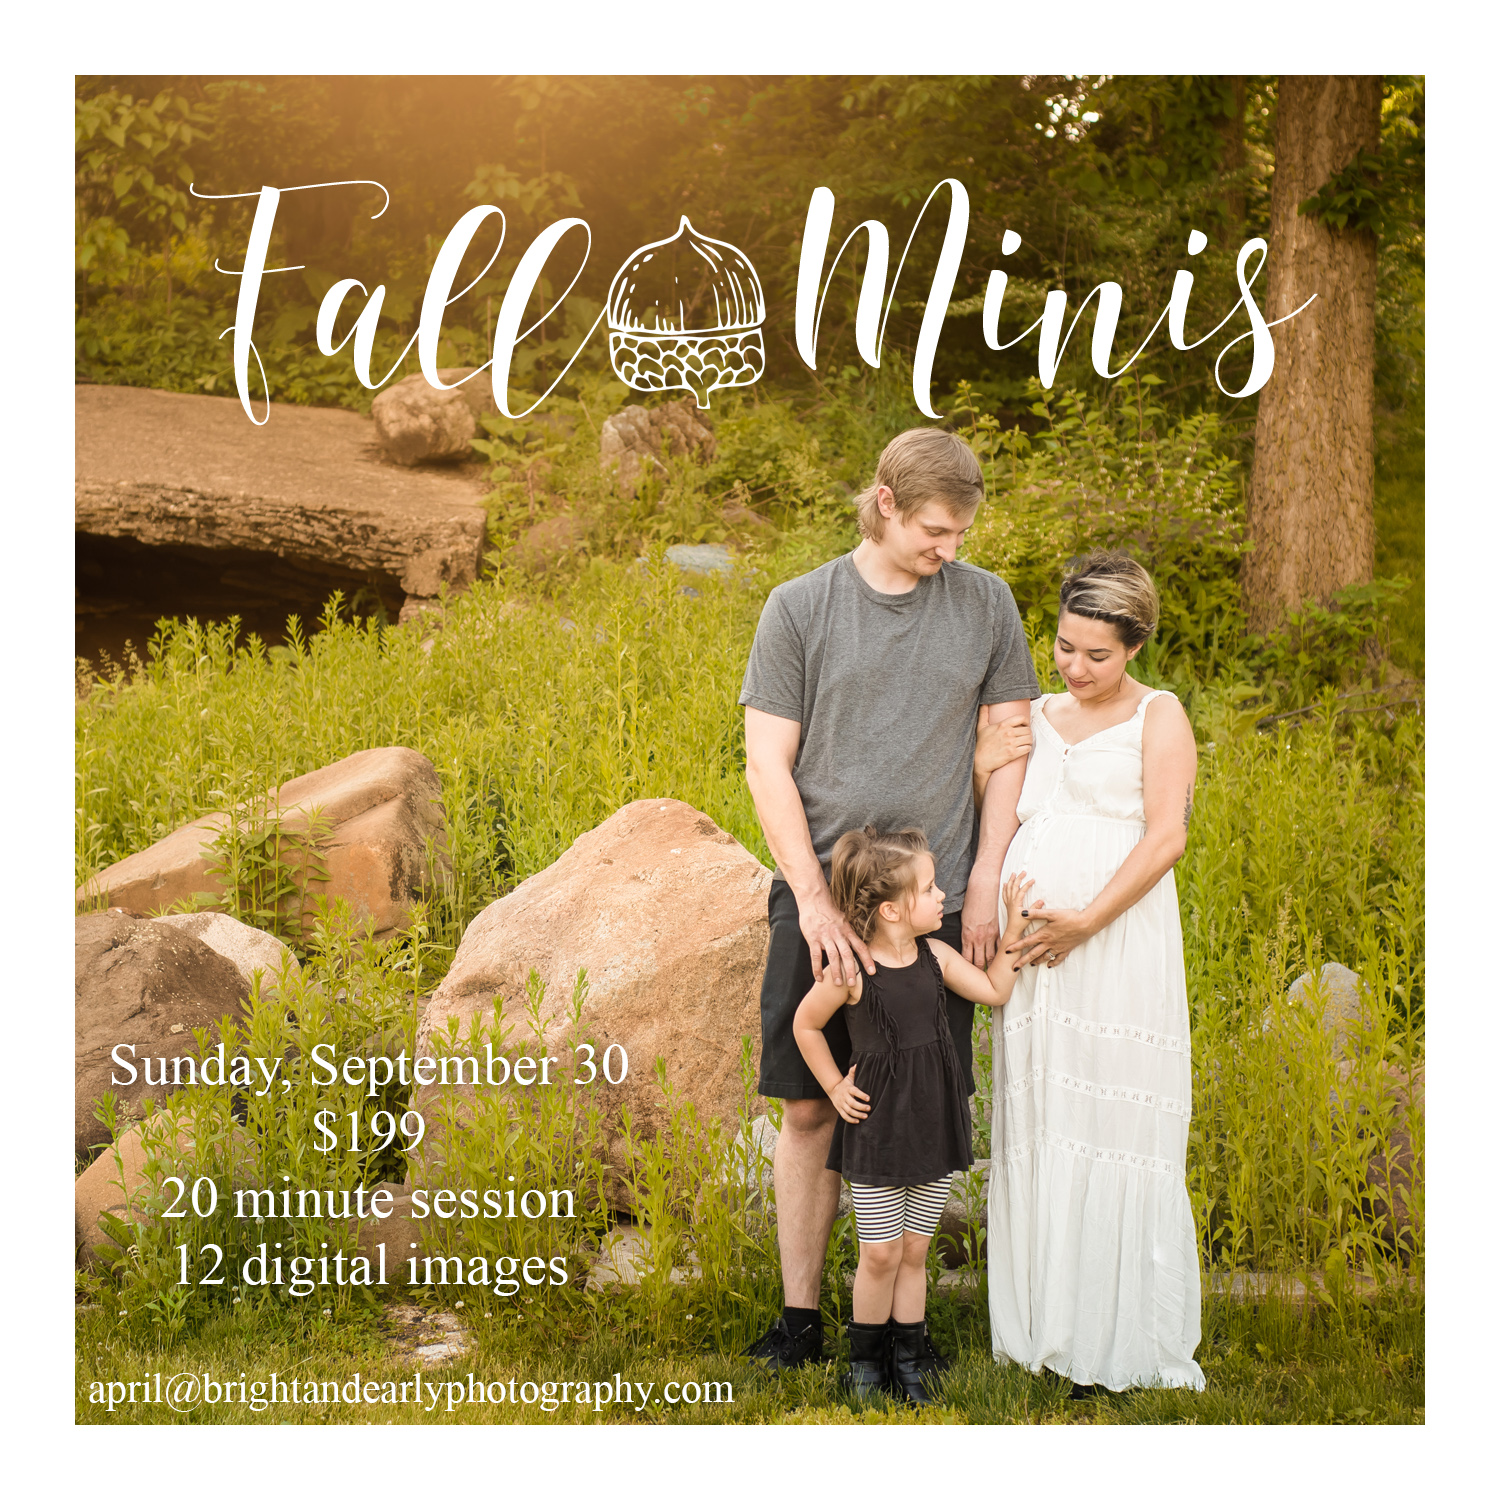 I'm happy to announce that I'm now booking fall mini sessions for this year!  Sessions will be held Sunday, September 30th only and times are limited, so contact me soon!  This year, we'll be at Fabyan Forest Preserve in Geneva, IL.  For $199, you'll get a 20 minute session and 12 digital images to download with print release. Additional products are available for purchase as well.  Contact me  here or email april@brightandearlyphotography.com to book your session!